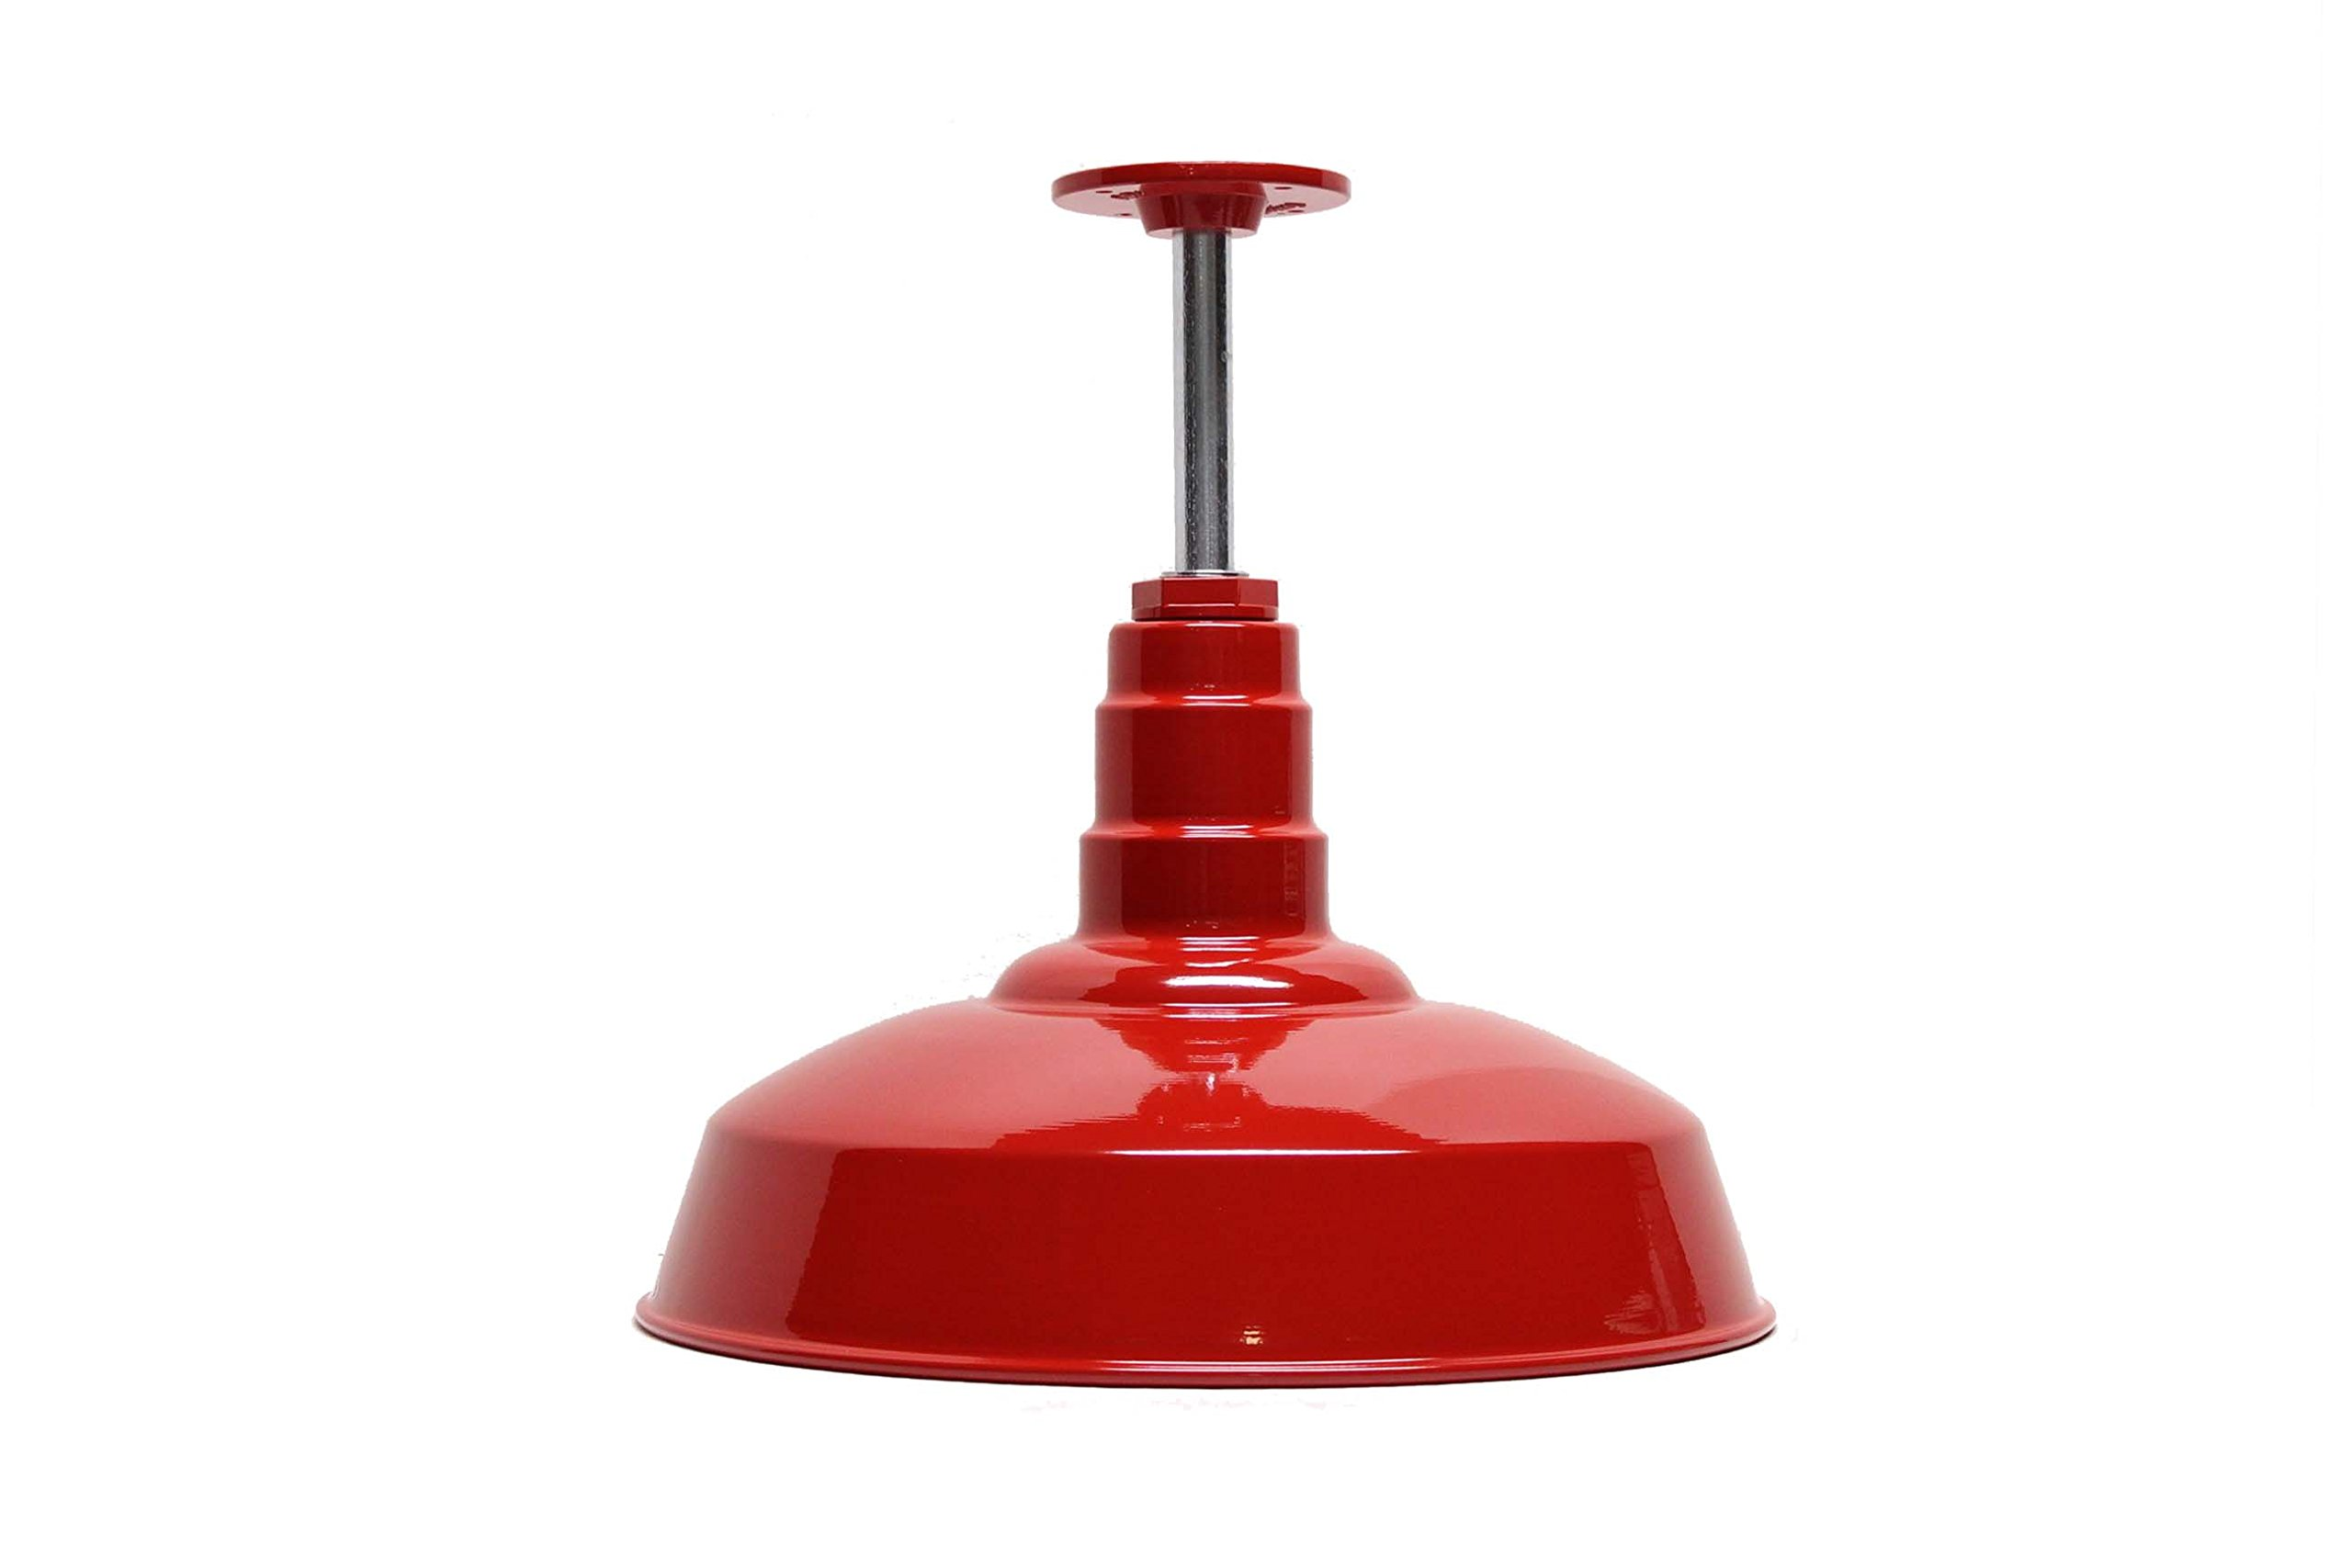 200 Watt Red Standard Rigid Pendant | Pendant Shade | 16'' Dome 12'' Stem | Includes Ceiling Mounting Plate | Made in America Powder Coated Steel